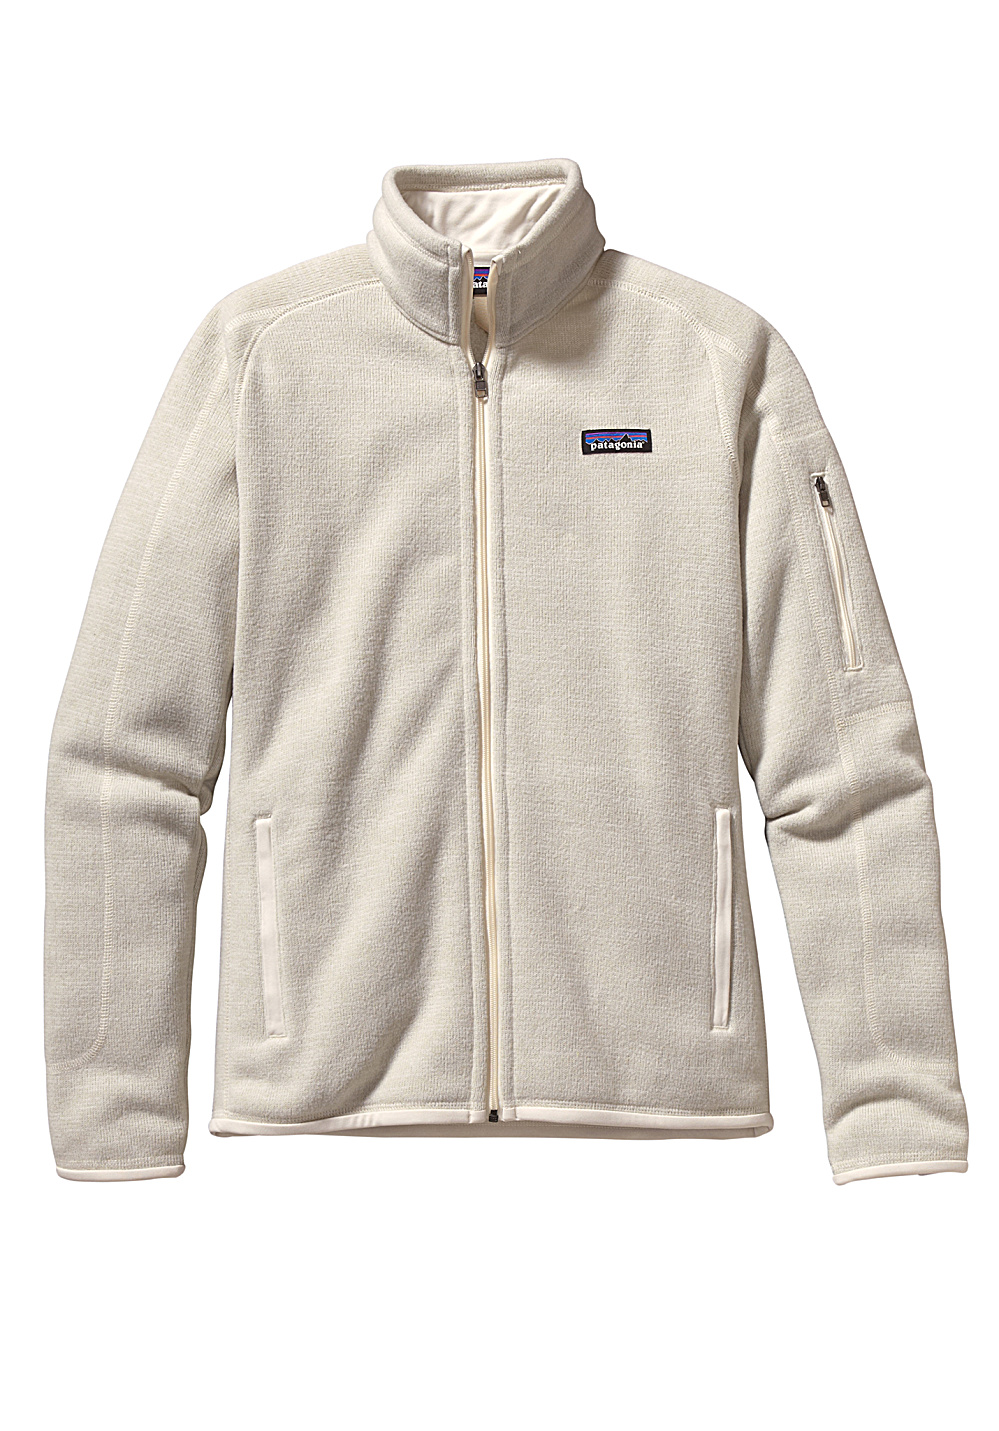 FREE SHIPPING AVAILABLE! Shop animeforum.cf and save on Beige Coats & Jackets.